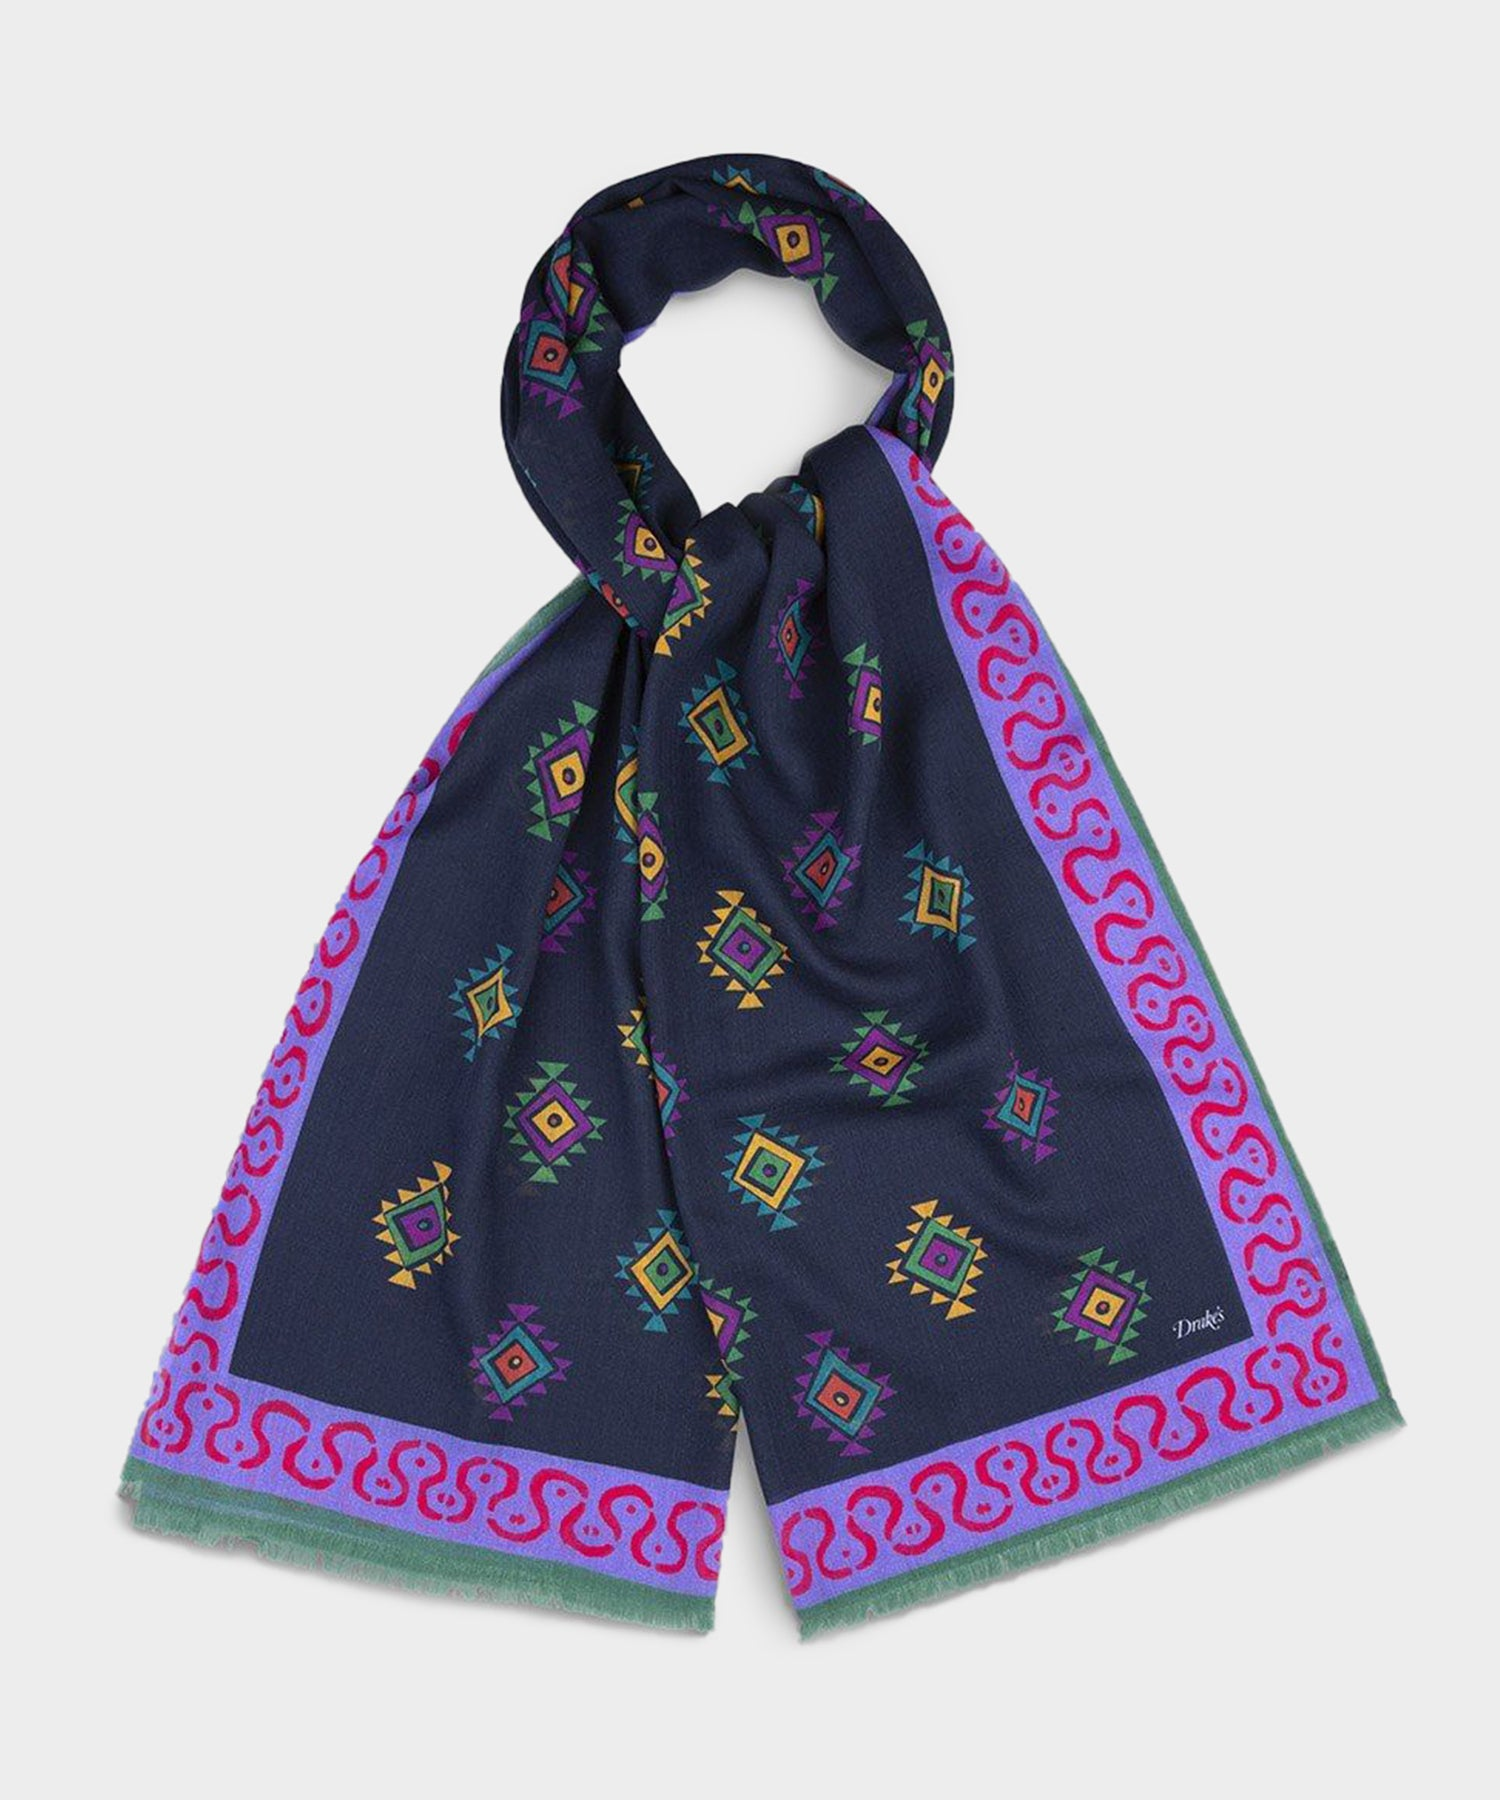 Drake's Navy and Purple Border Diamond Printed Wool Scarf